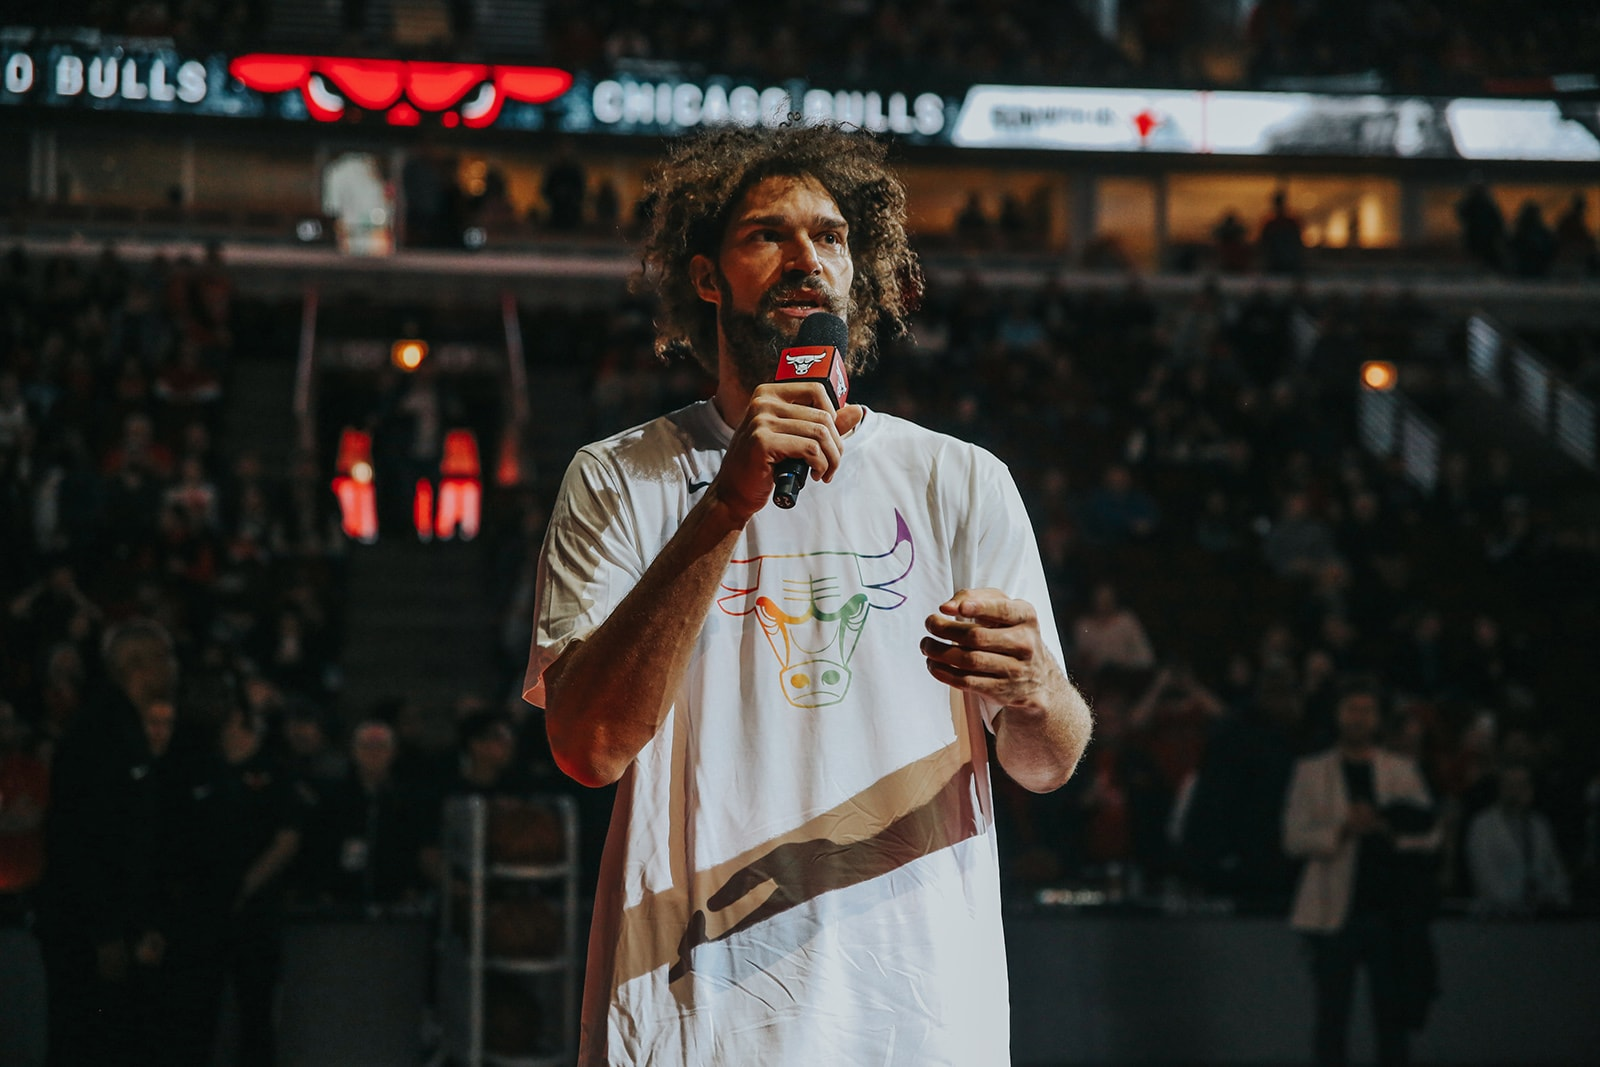 Robin Lopez speaks to the crowd before the start of a Bulls game.